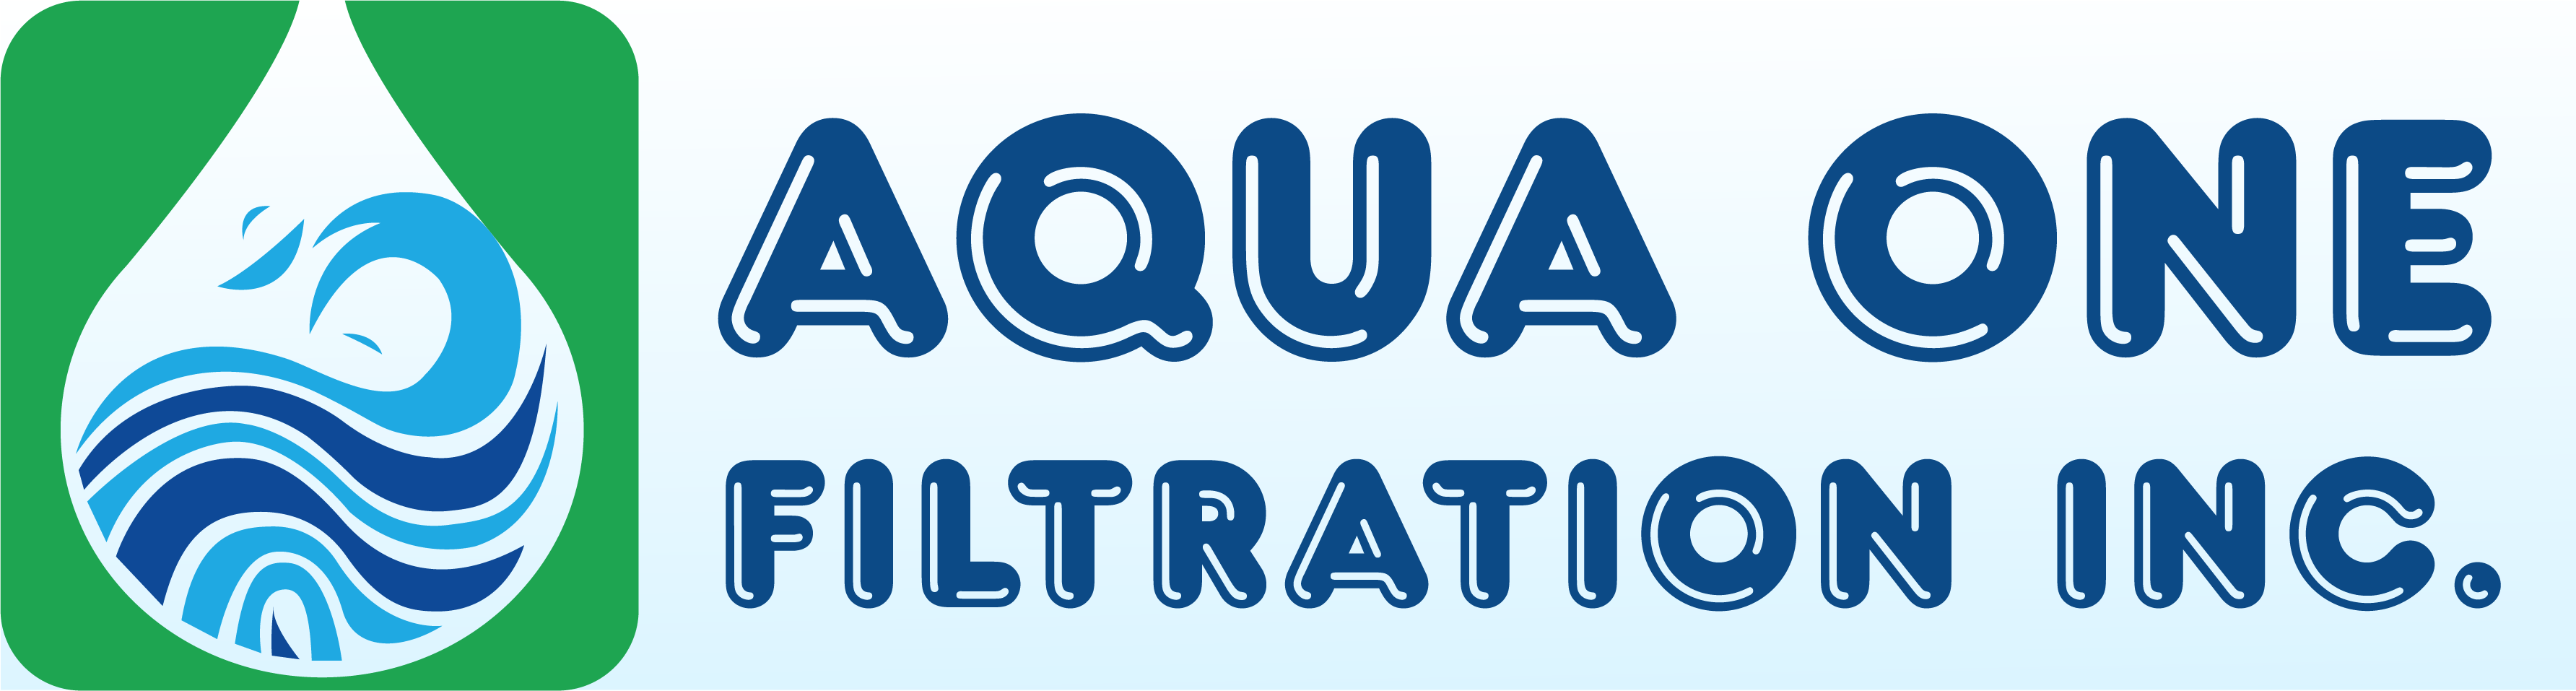 Aqua One Filtration Technologies LTD